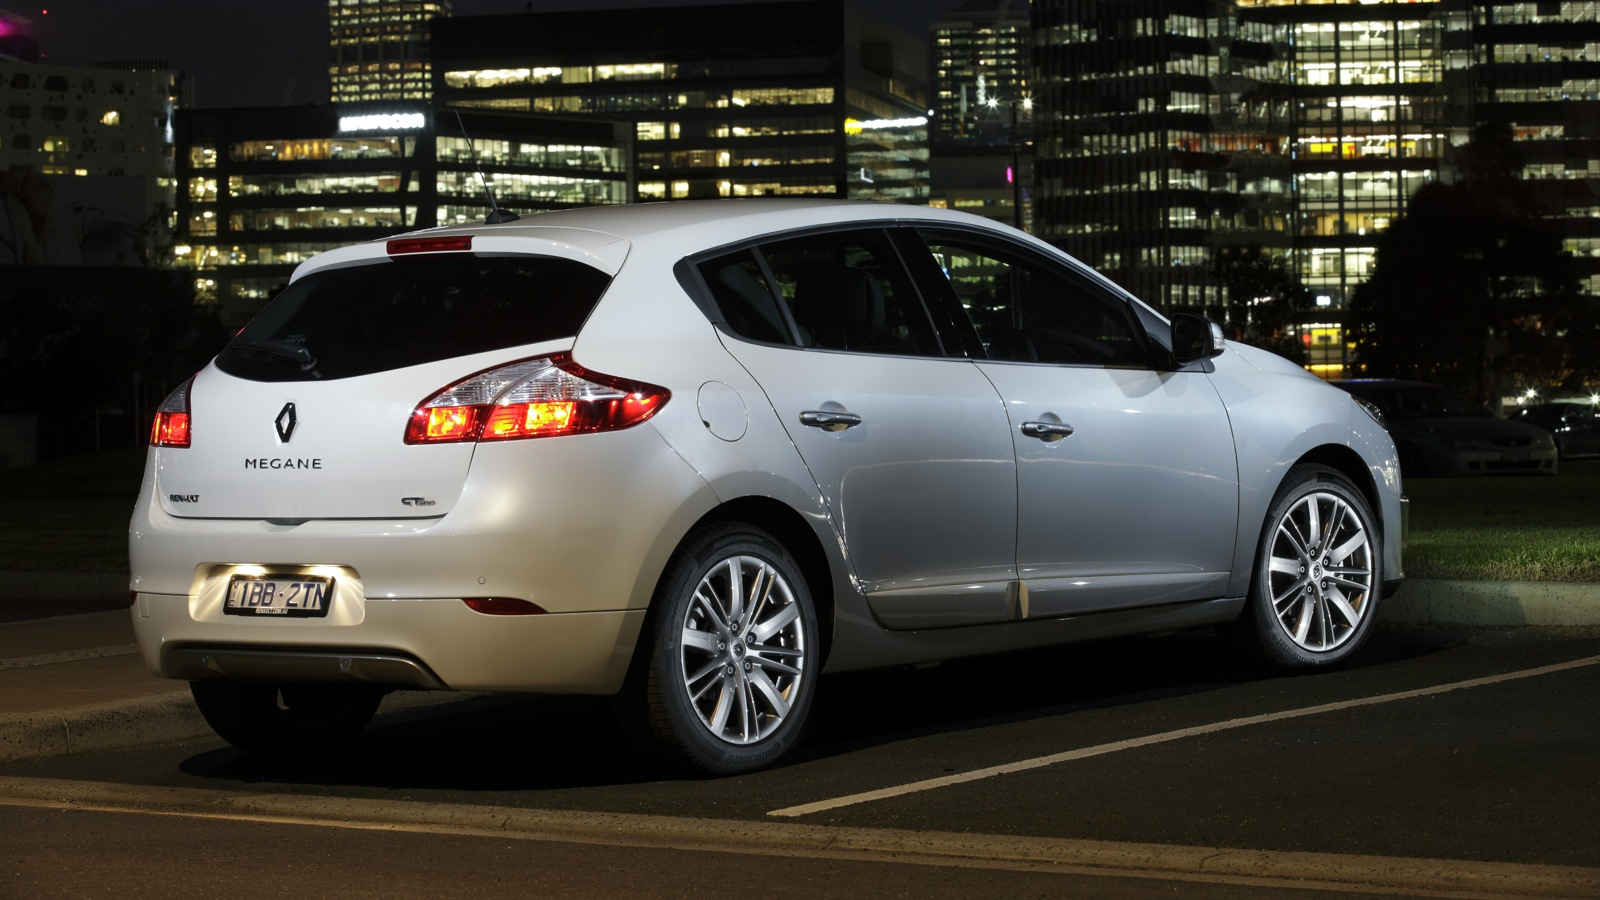 2014 Renault Megane Review - photos | CarAdvice